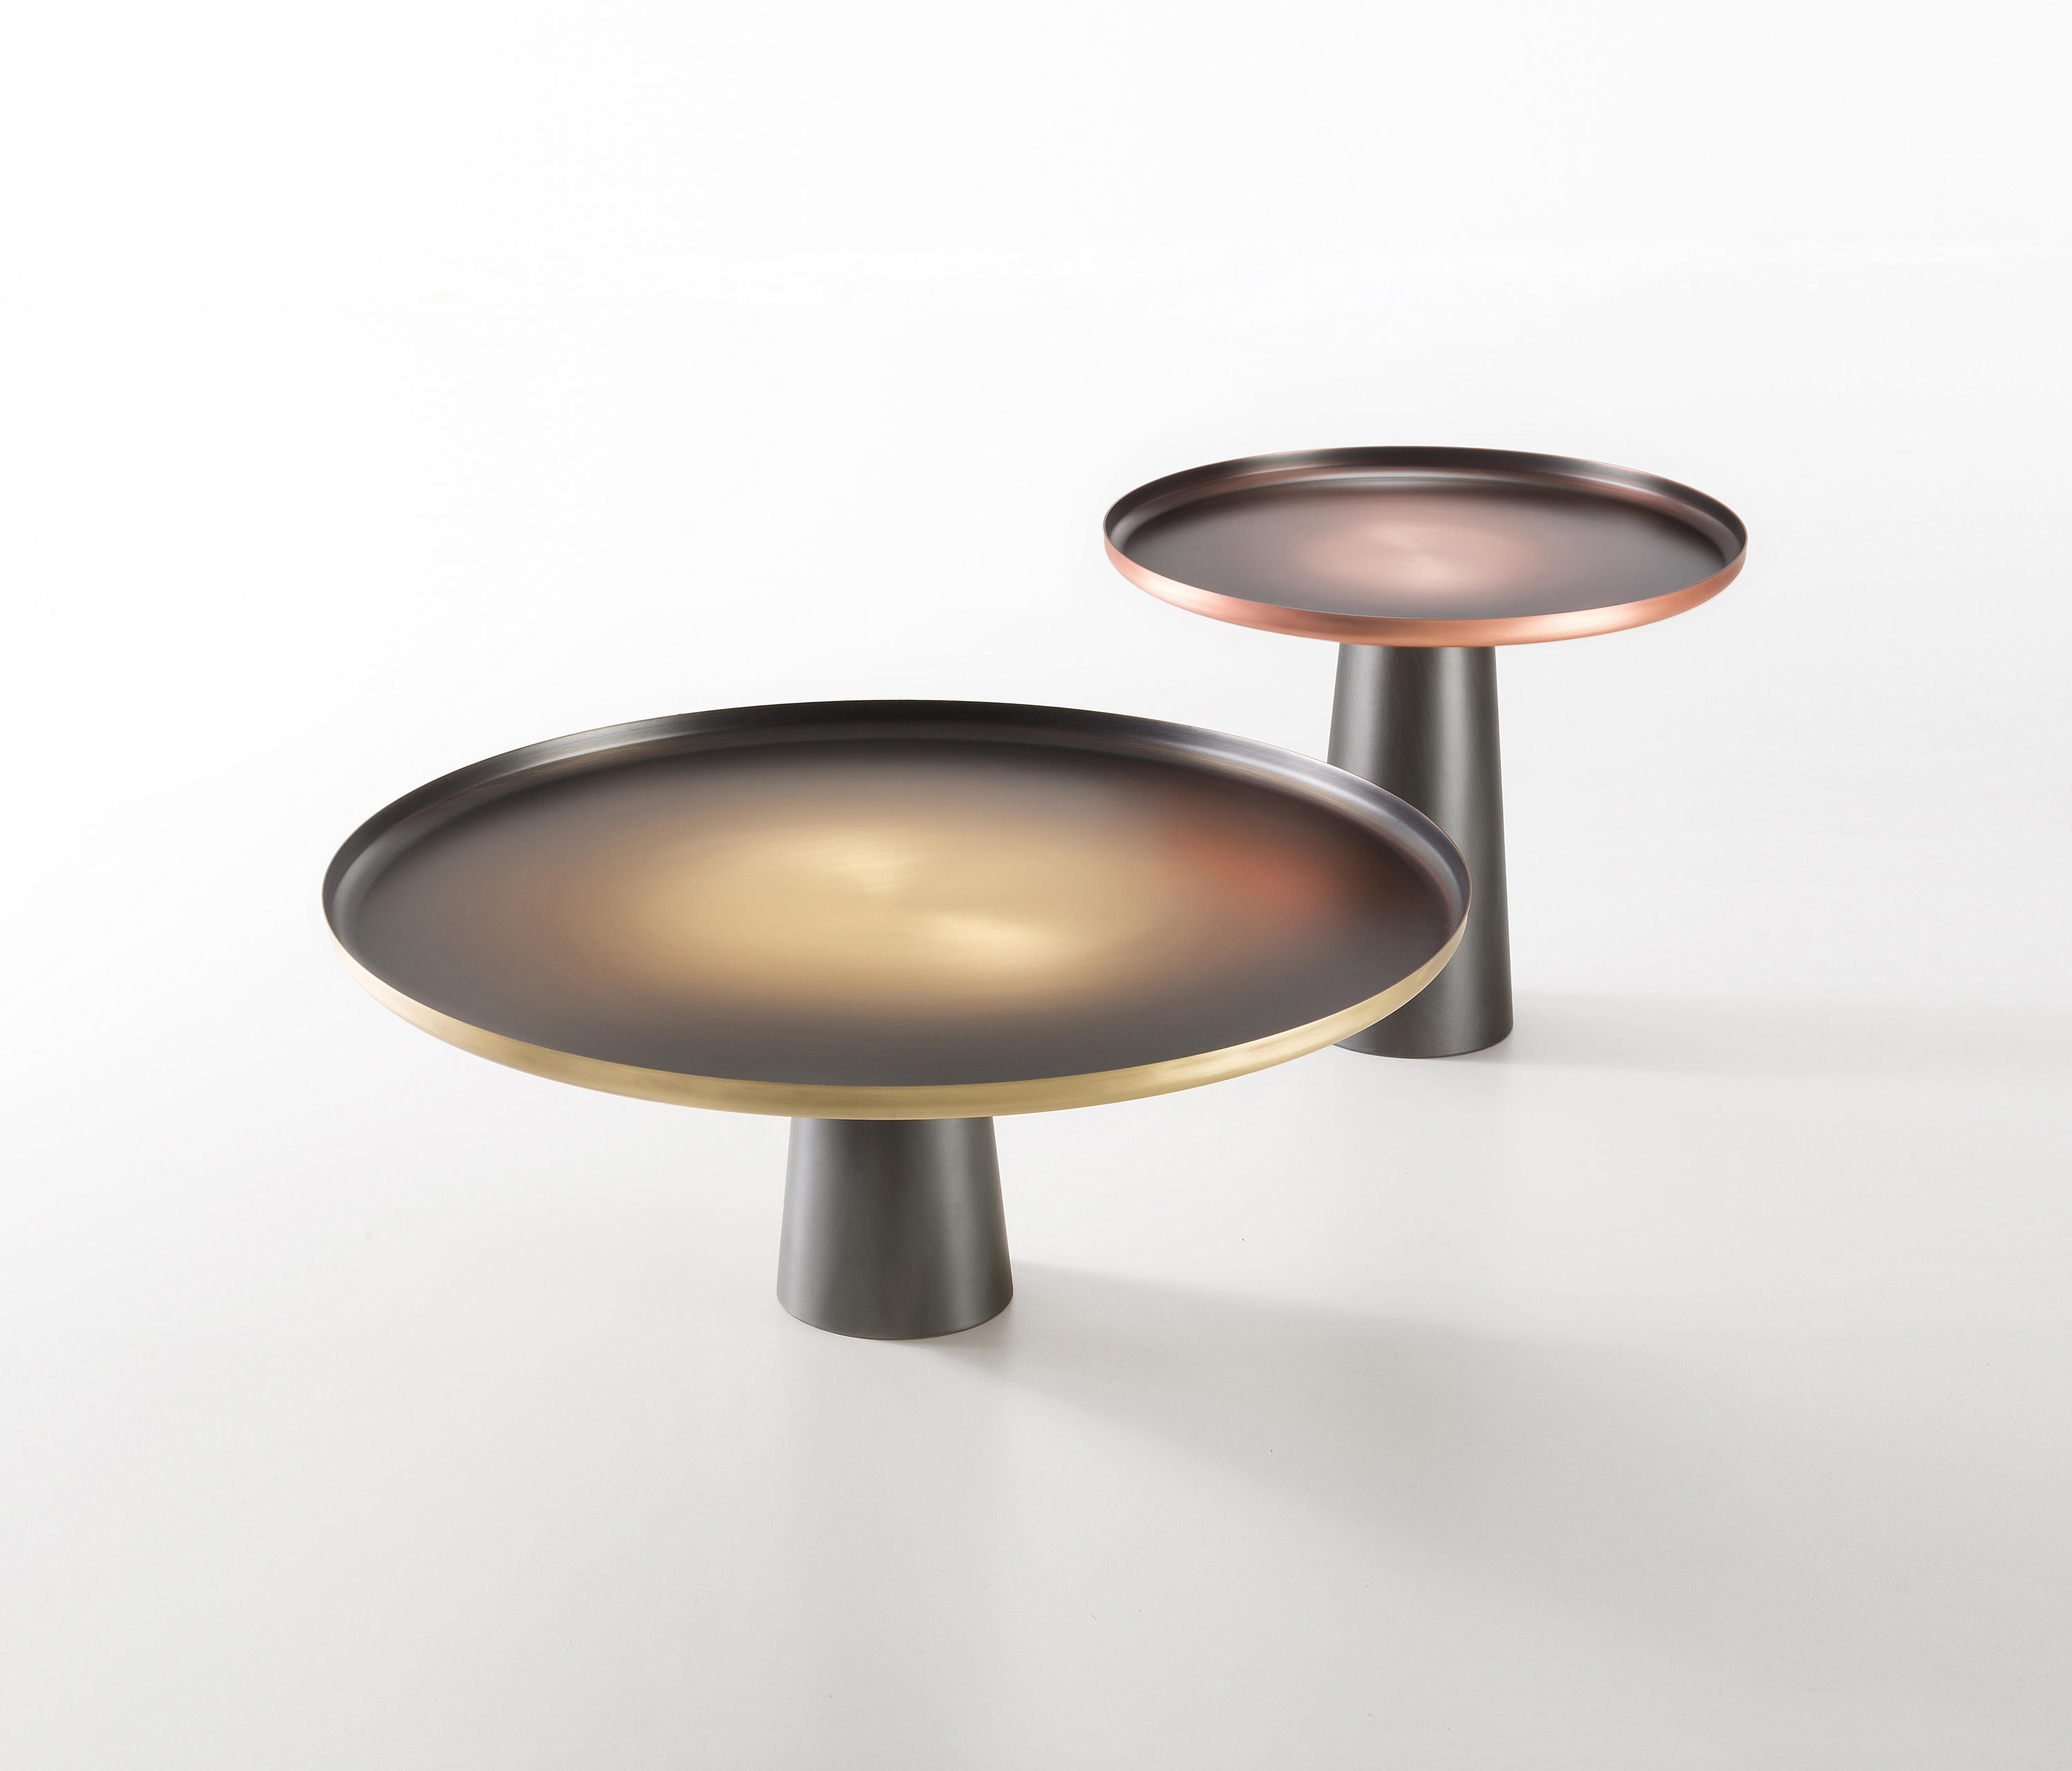 Sunrise & Sunset & Designer Furniture | Architonic Throughout Sunrise And Sunset Tables For Select Cities